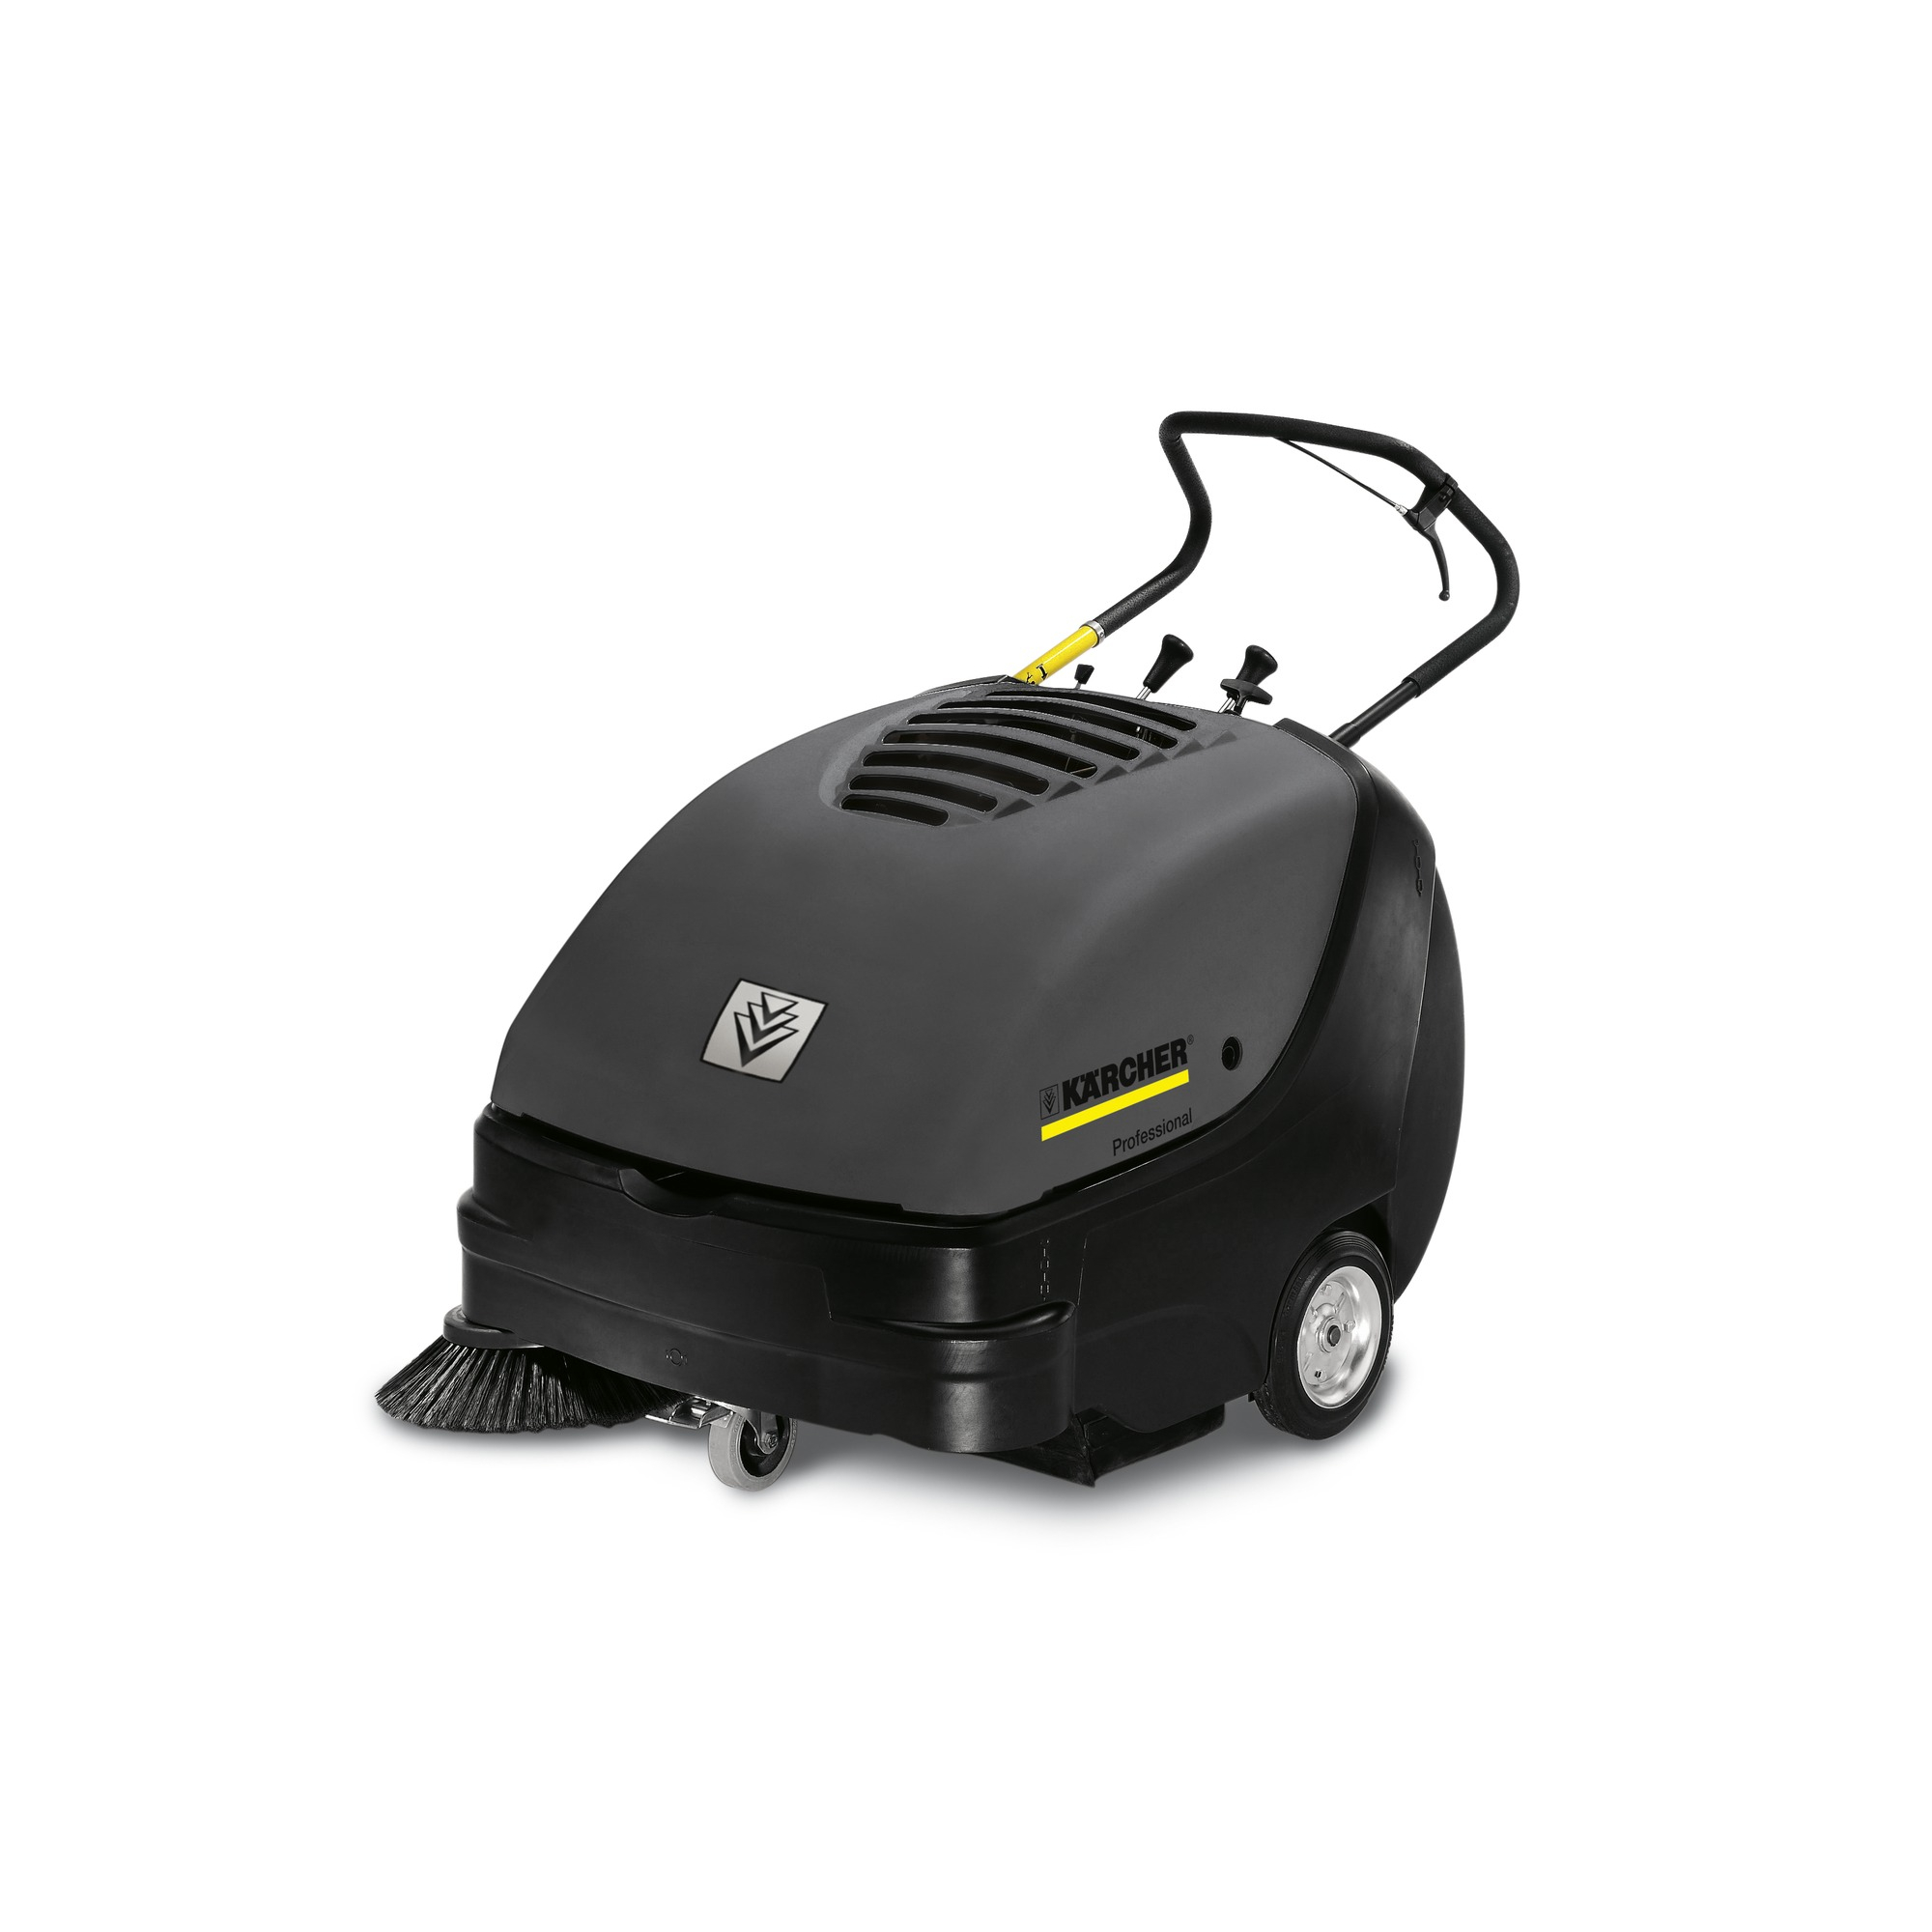 KM 85/50 W BP Pack Adv 1.351-115.0 KARCHER - KARCHER PREMIER CENTER